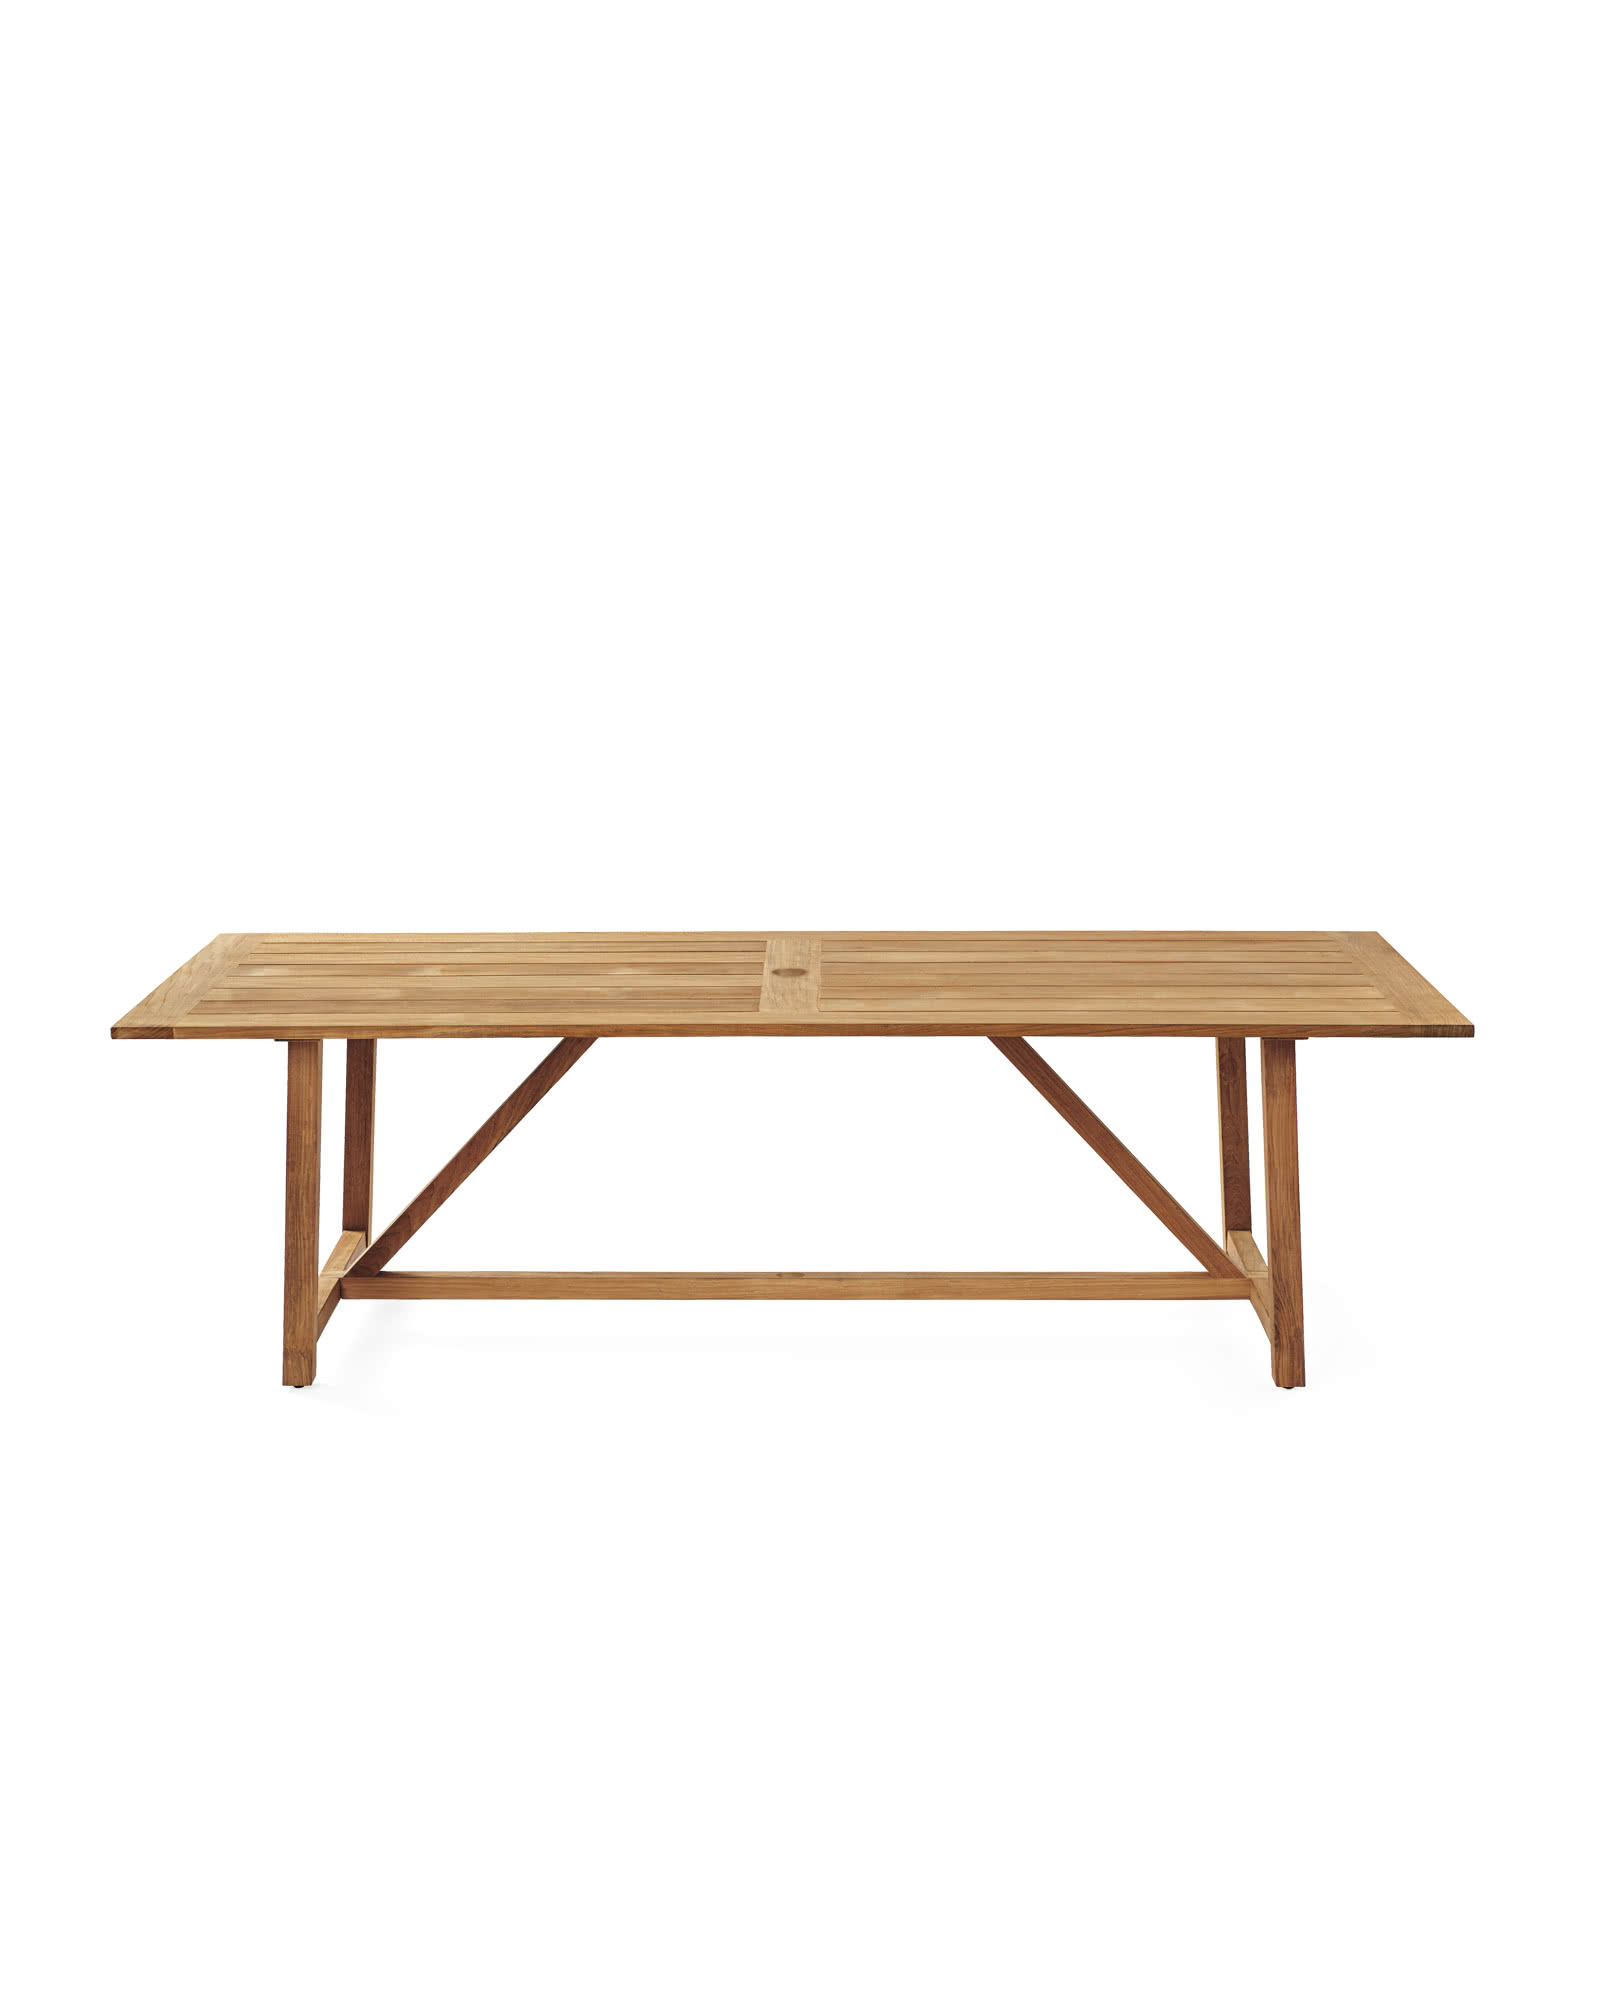 Crosby Teak Outdoor Dining Table